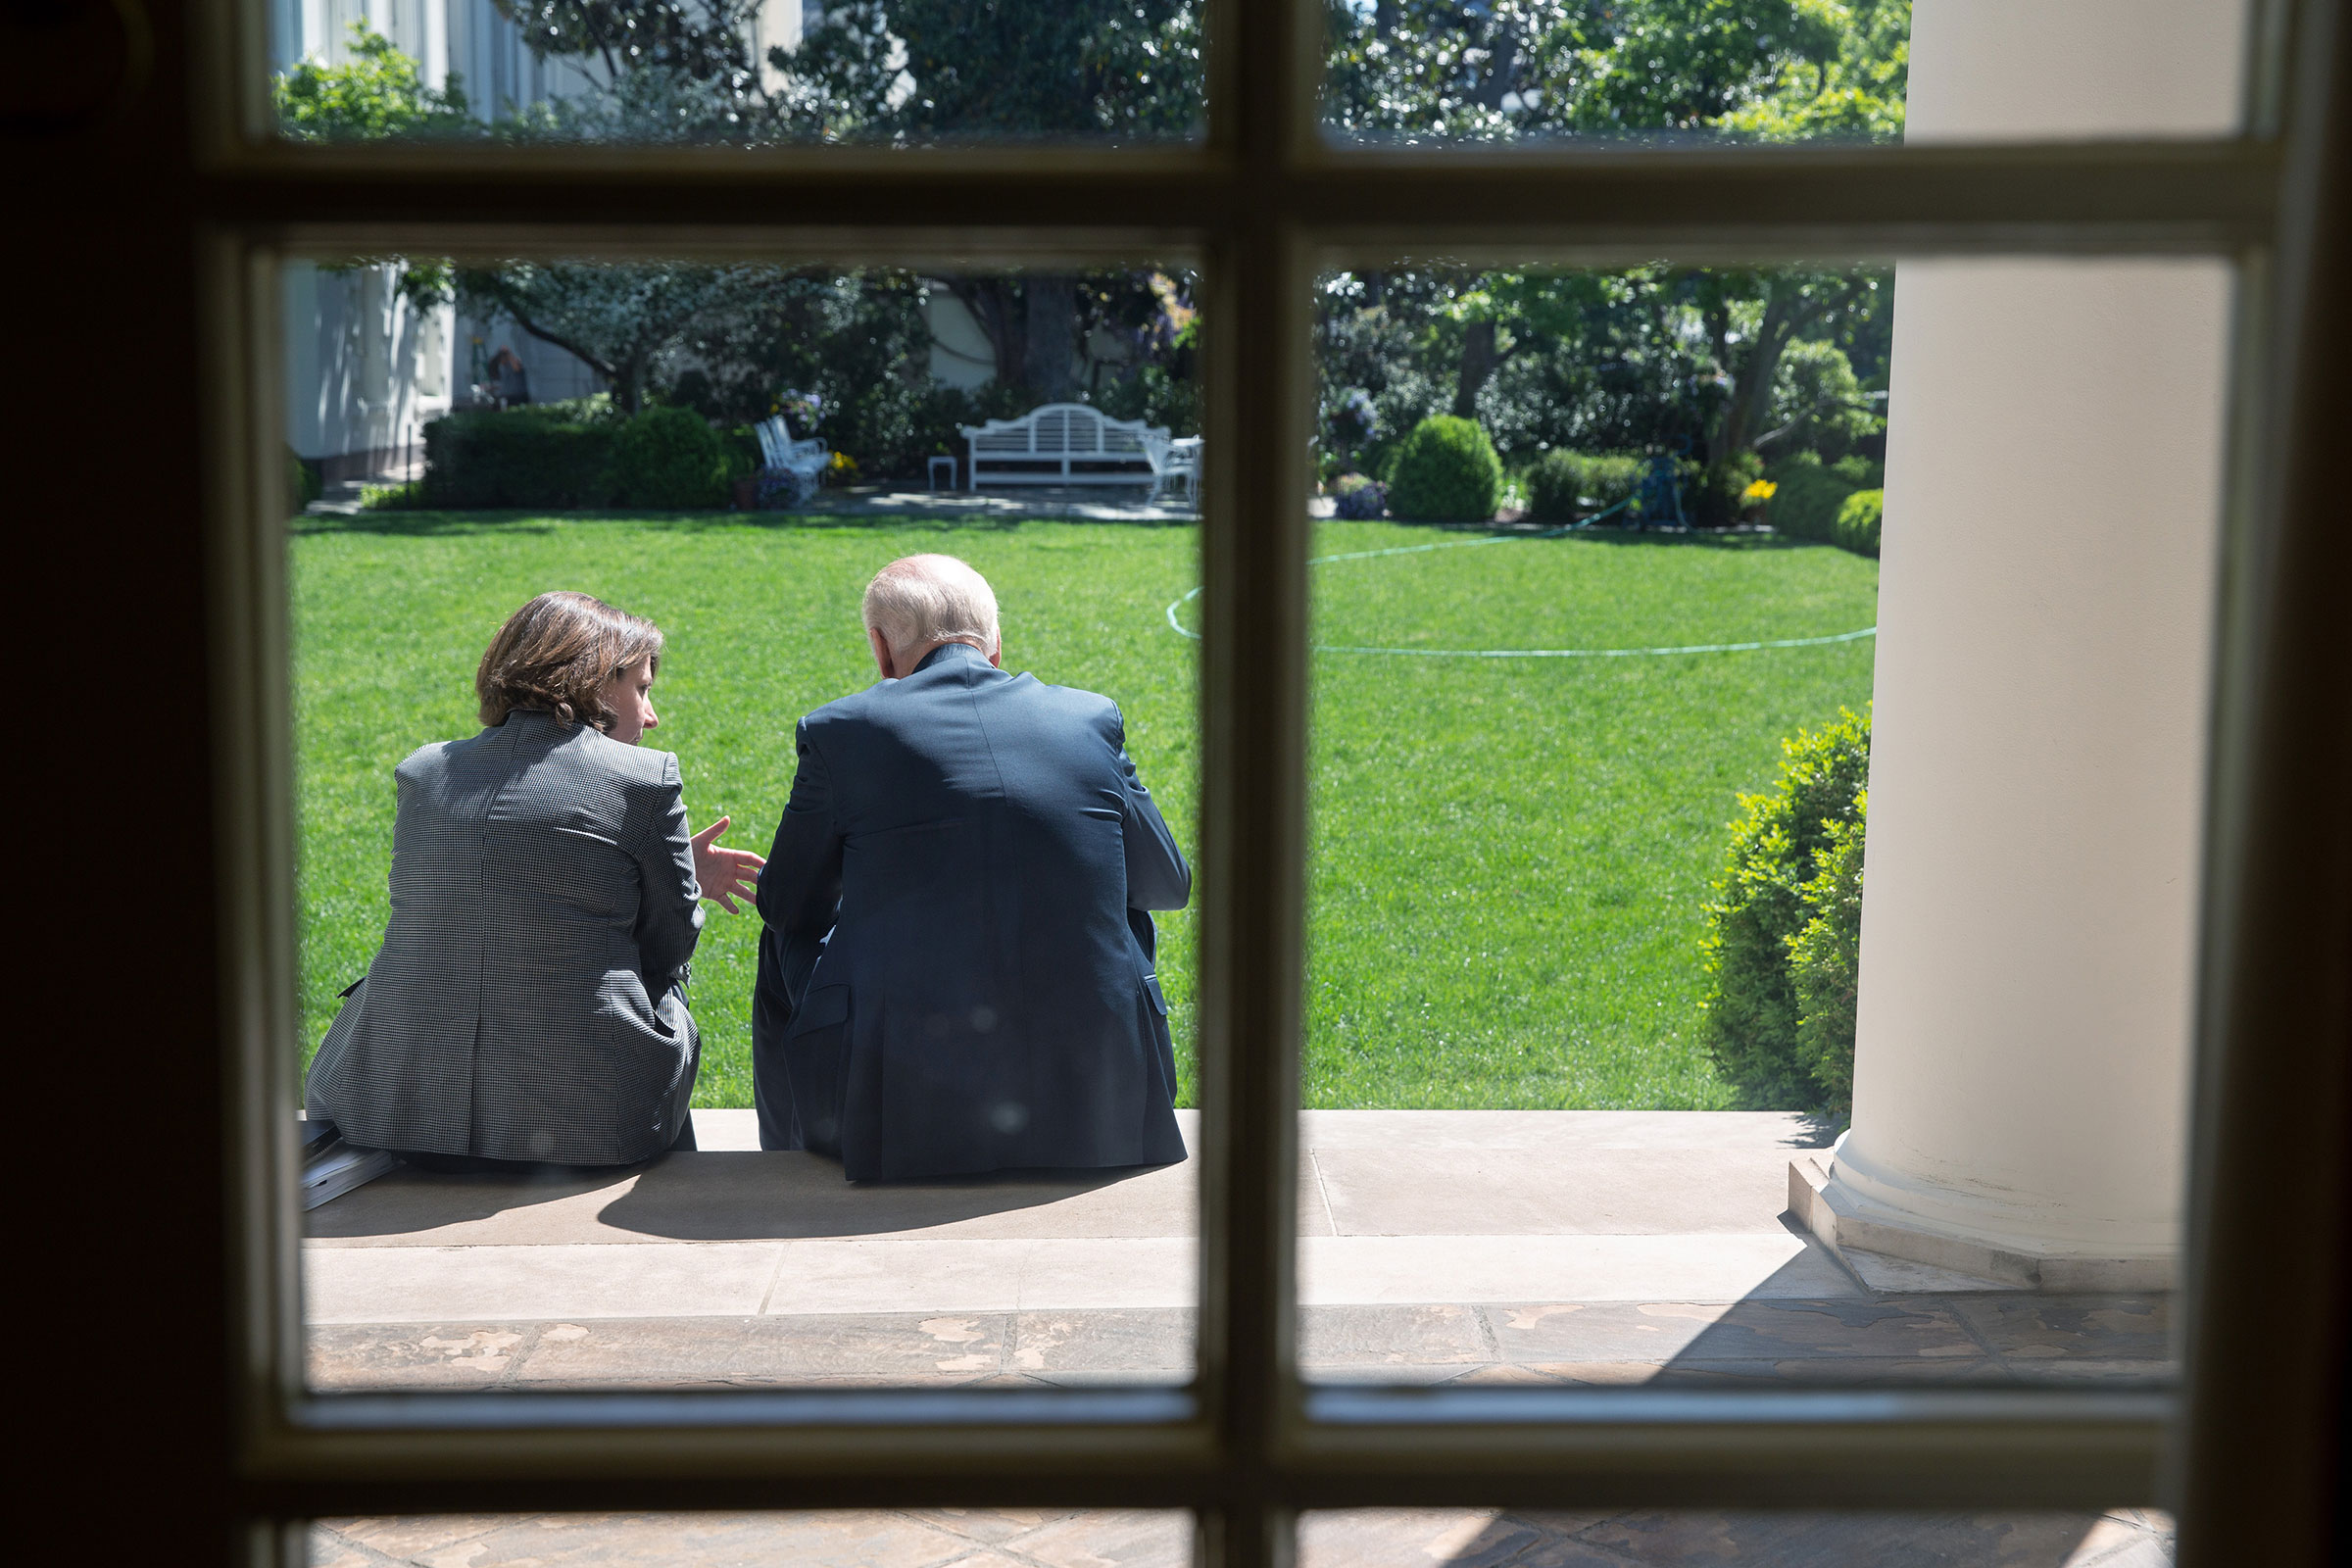 Vice President Joe Biden and Lisa Monaco, Assistant to the President for Homeland Security and Counterterrorism, talk on the steps from the Colonnade to the Rose Garden at the White House following the Presidential Daily Briefing, on May 1, 2013.